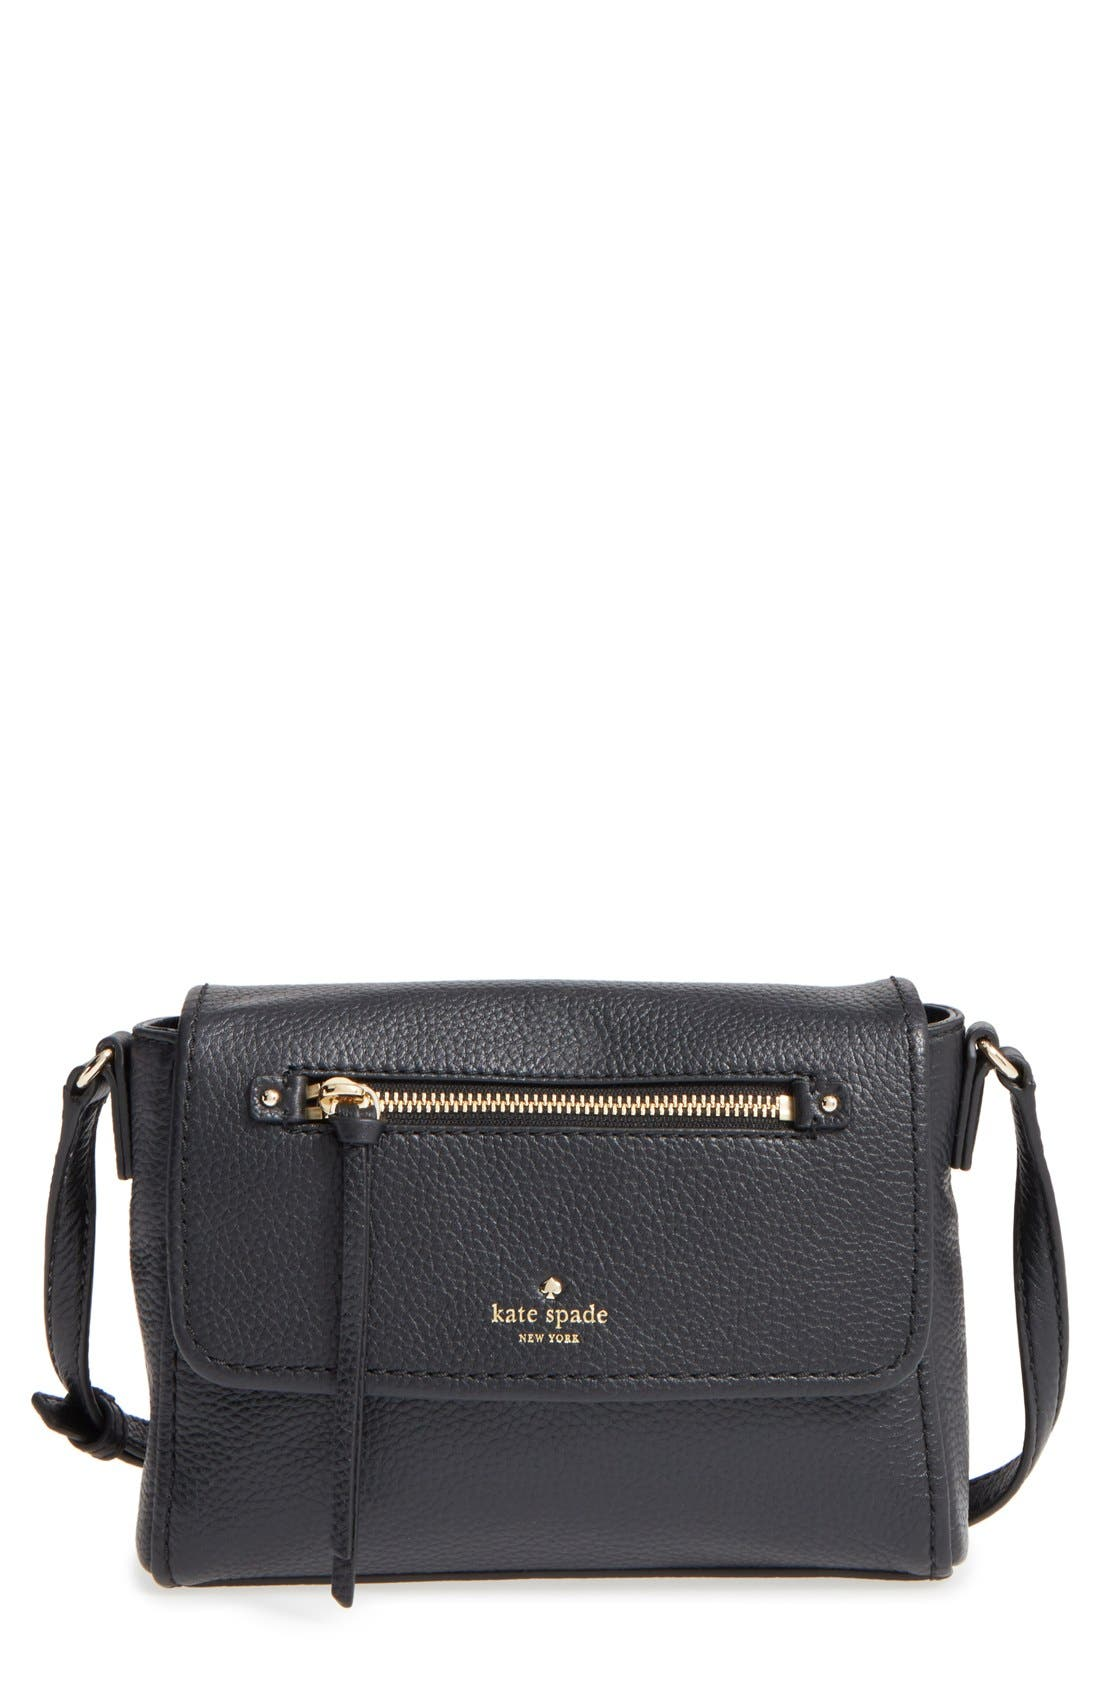 KATE SPADE NEW YORK 'cobble hill - mini toddy' leather crossbody bag, Main, color, 001